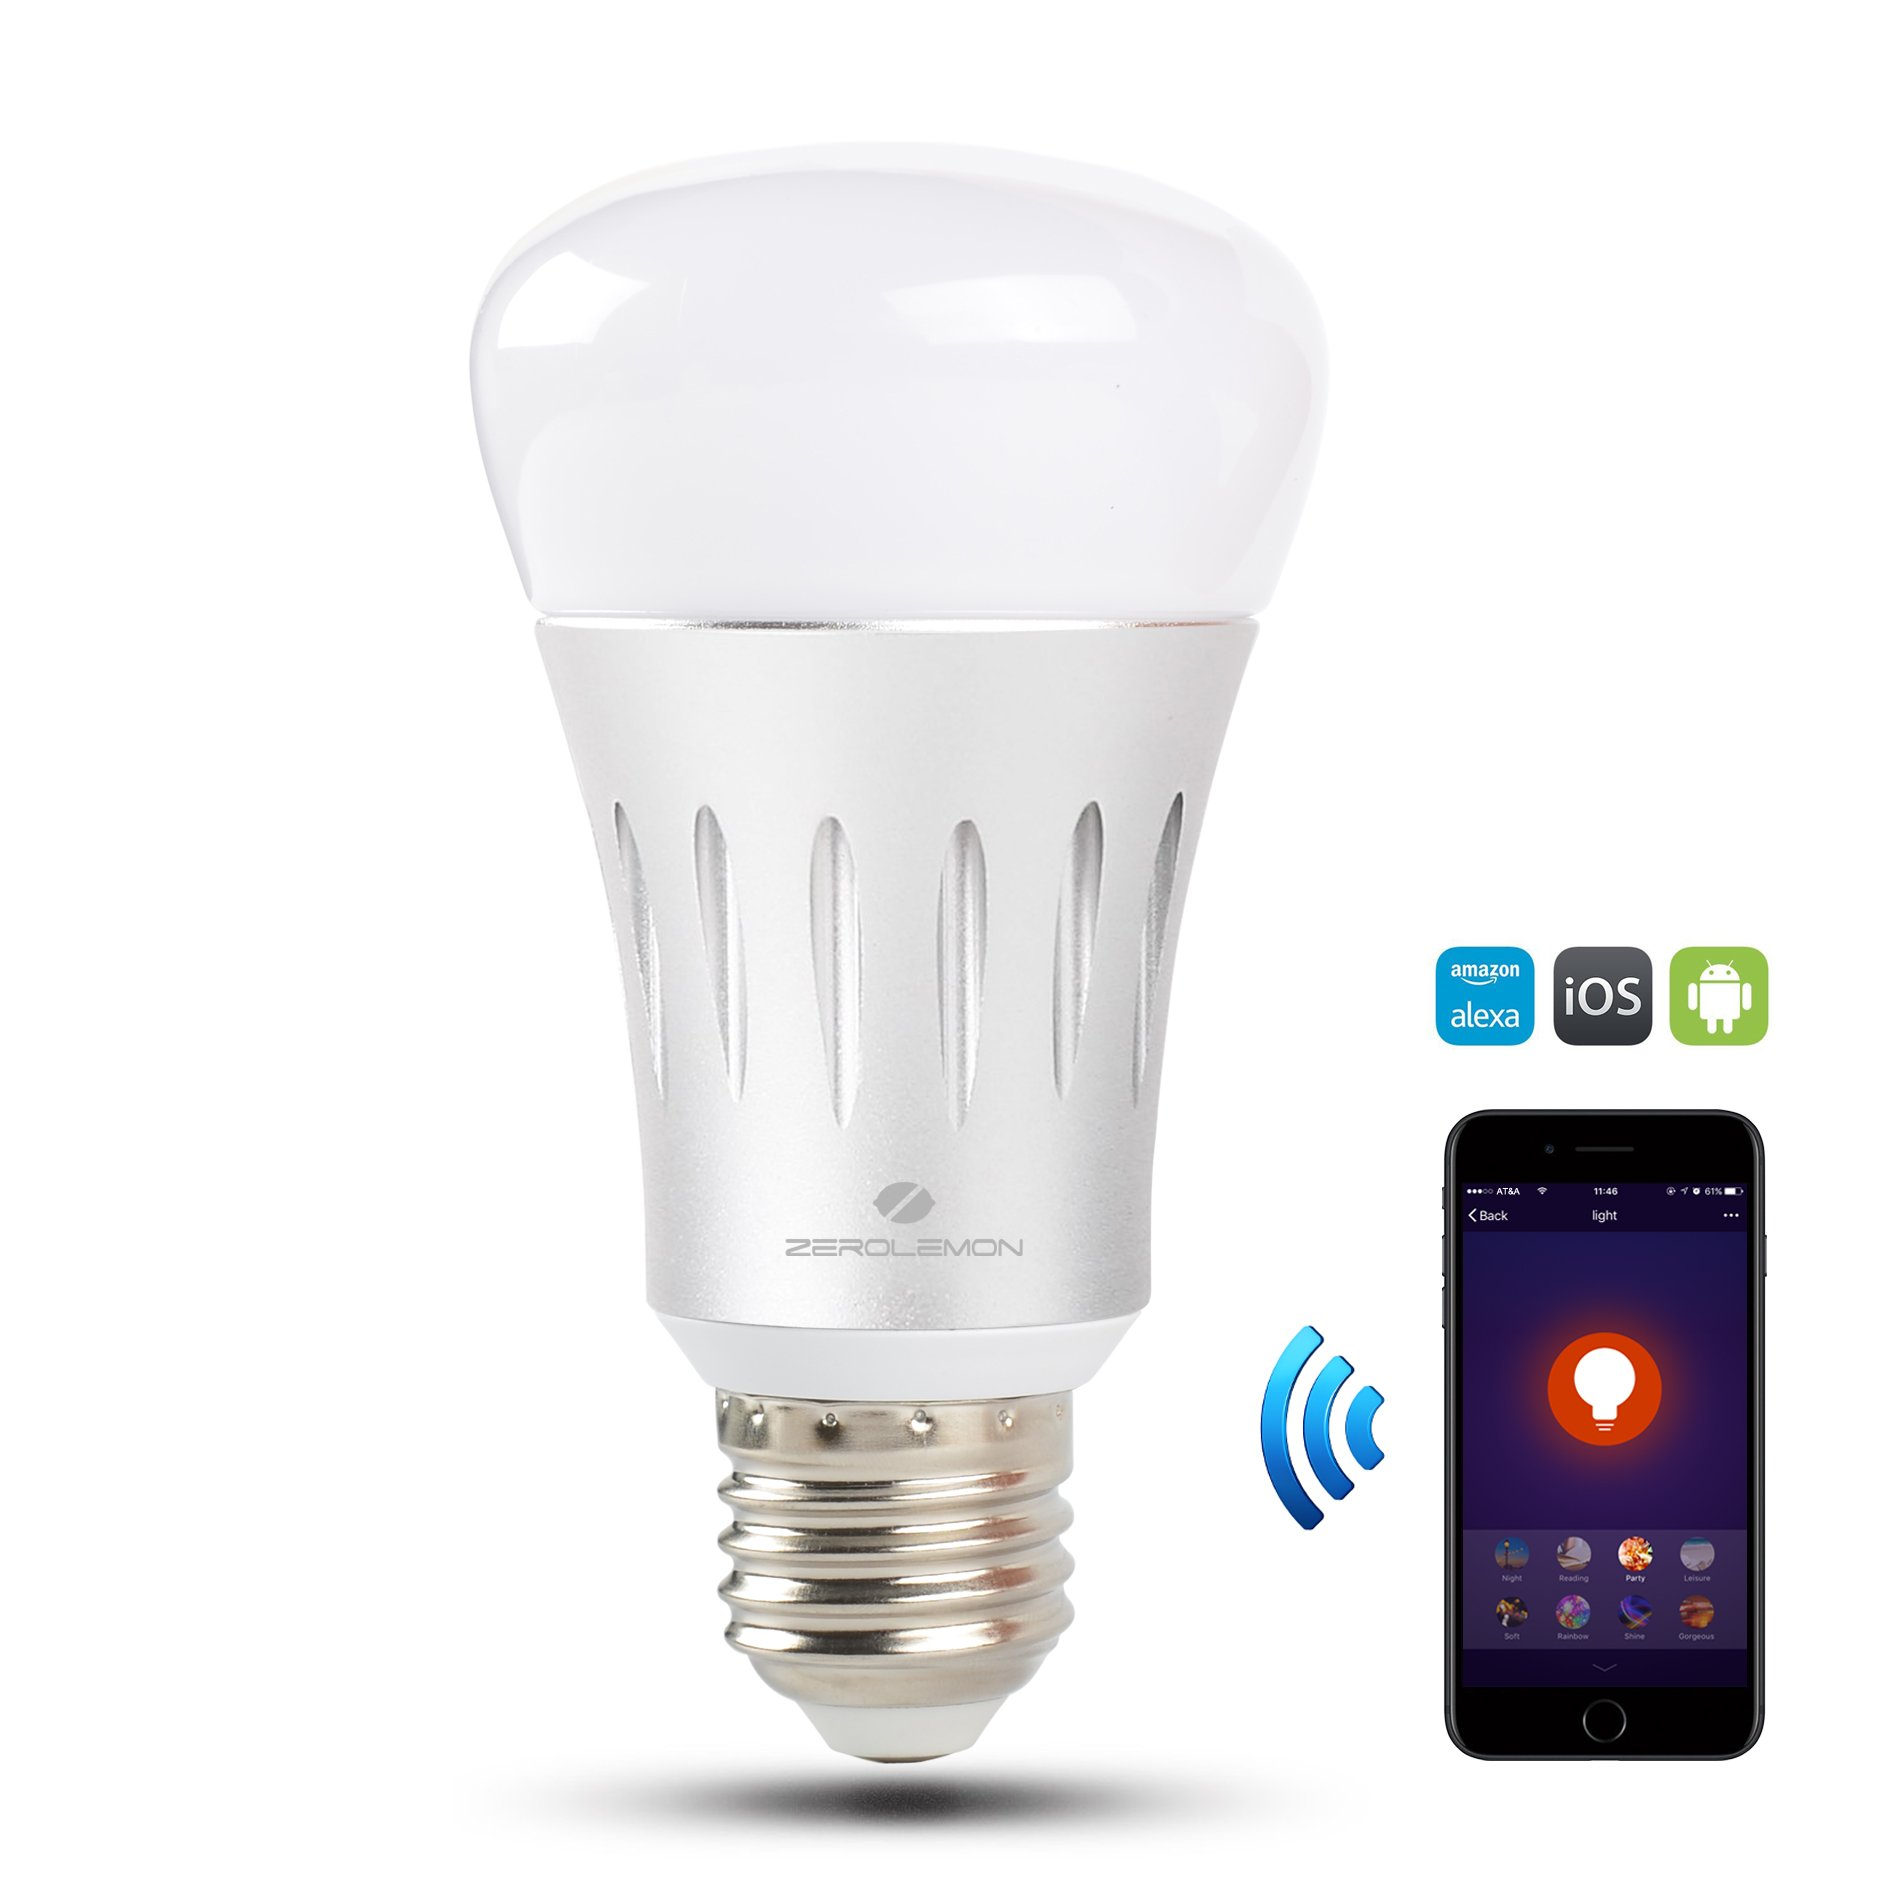 Wifi Smart Led Light Bulb, ZeroLemon Multi Color Smart Bulb Compatible with Alexa and Google Assistant, Home Dimmable Light, Color Changing Light For Party and Decorative Ambient Light Bulb - Silver